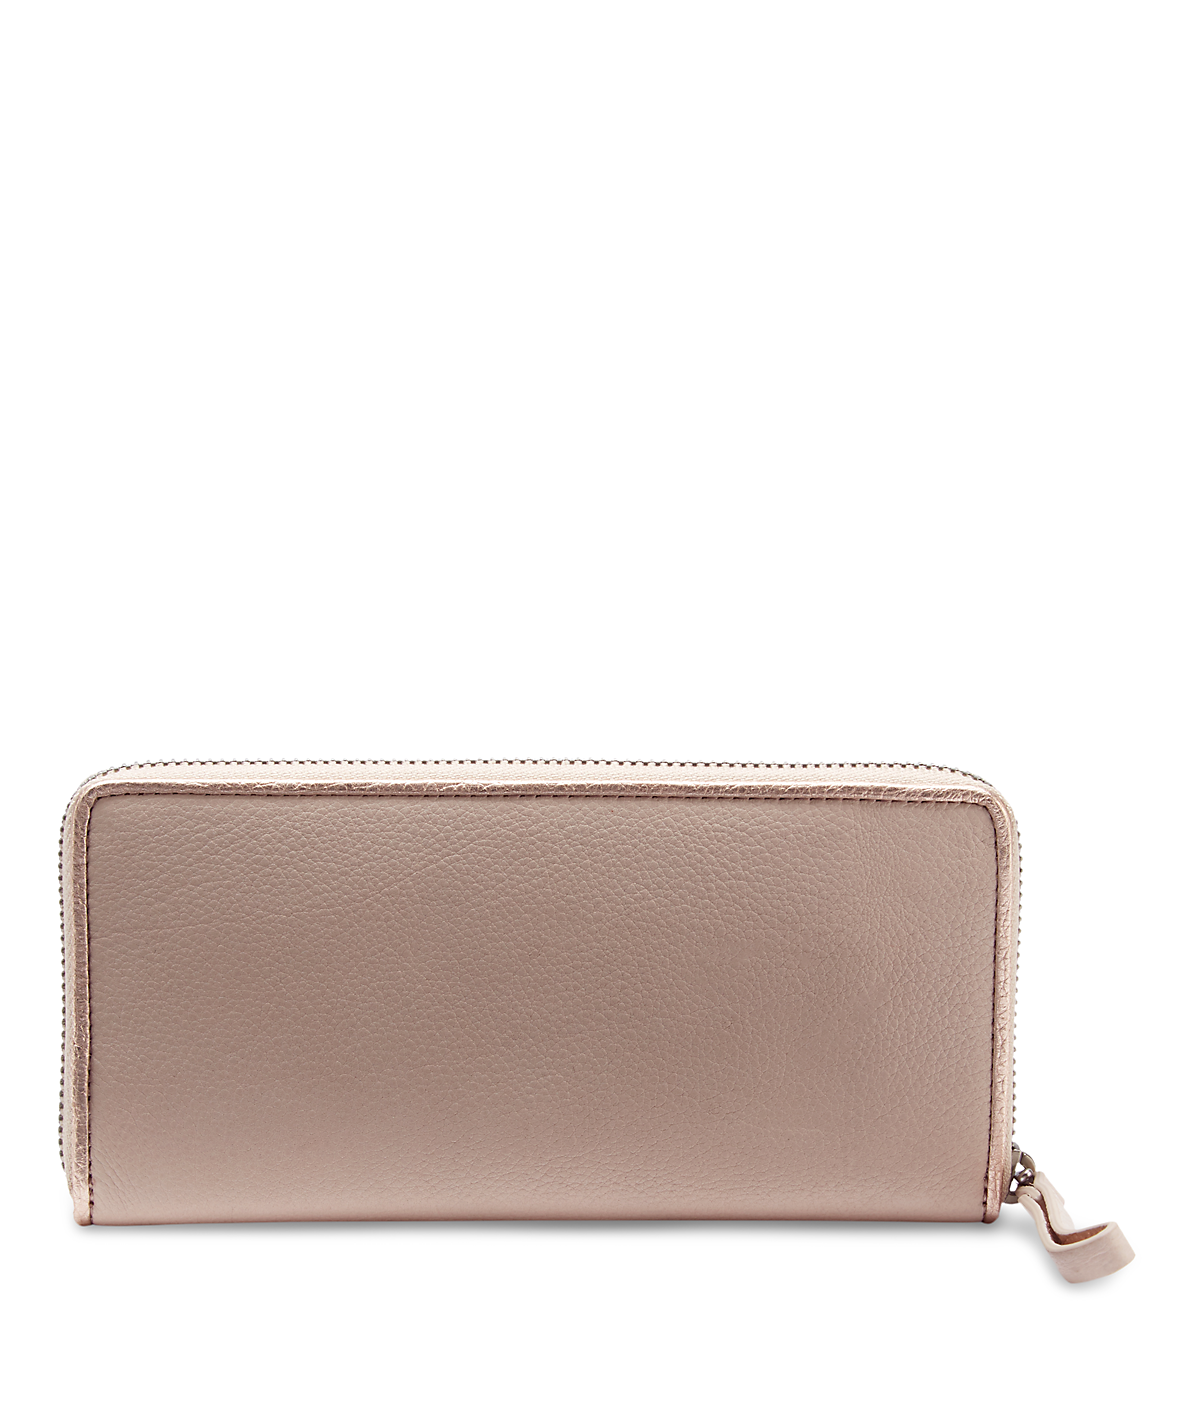 Sally B purse from liebeskind